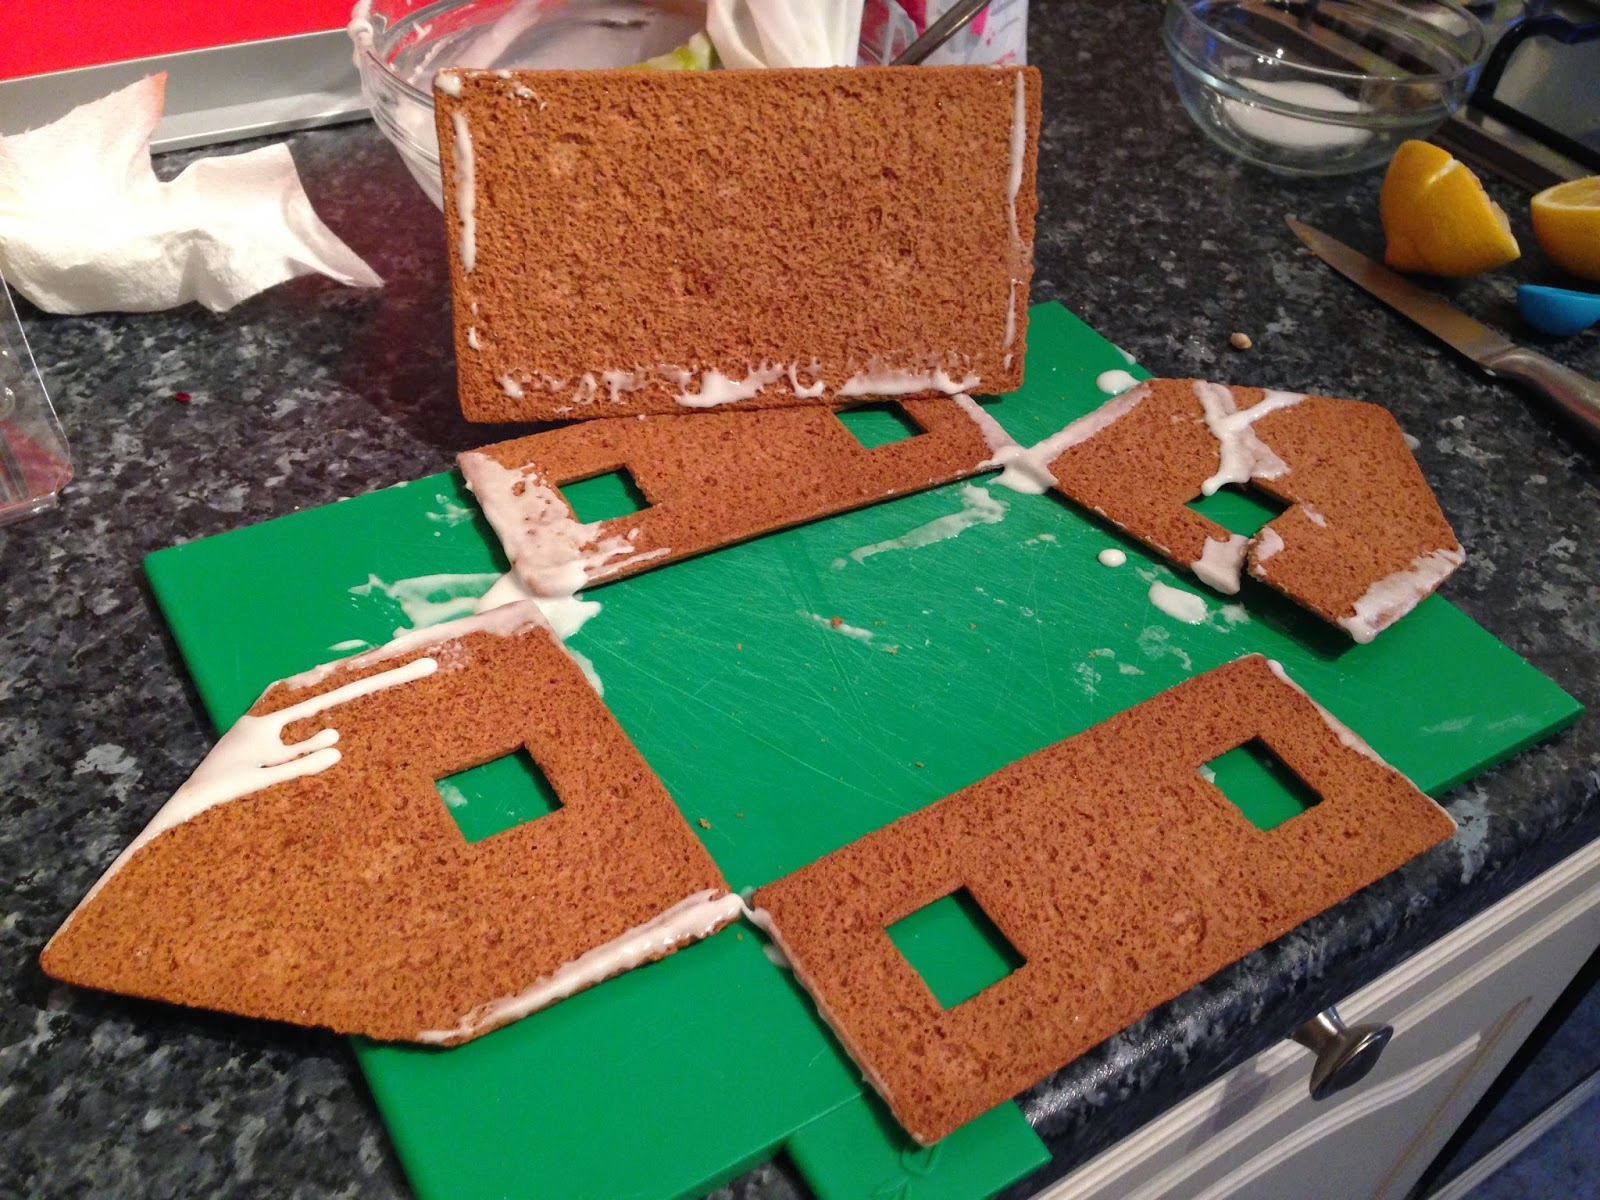 The dissembled walls of a gingerbread house